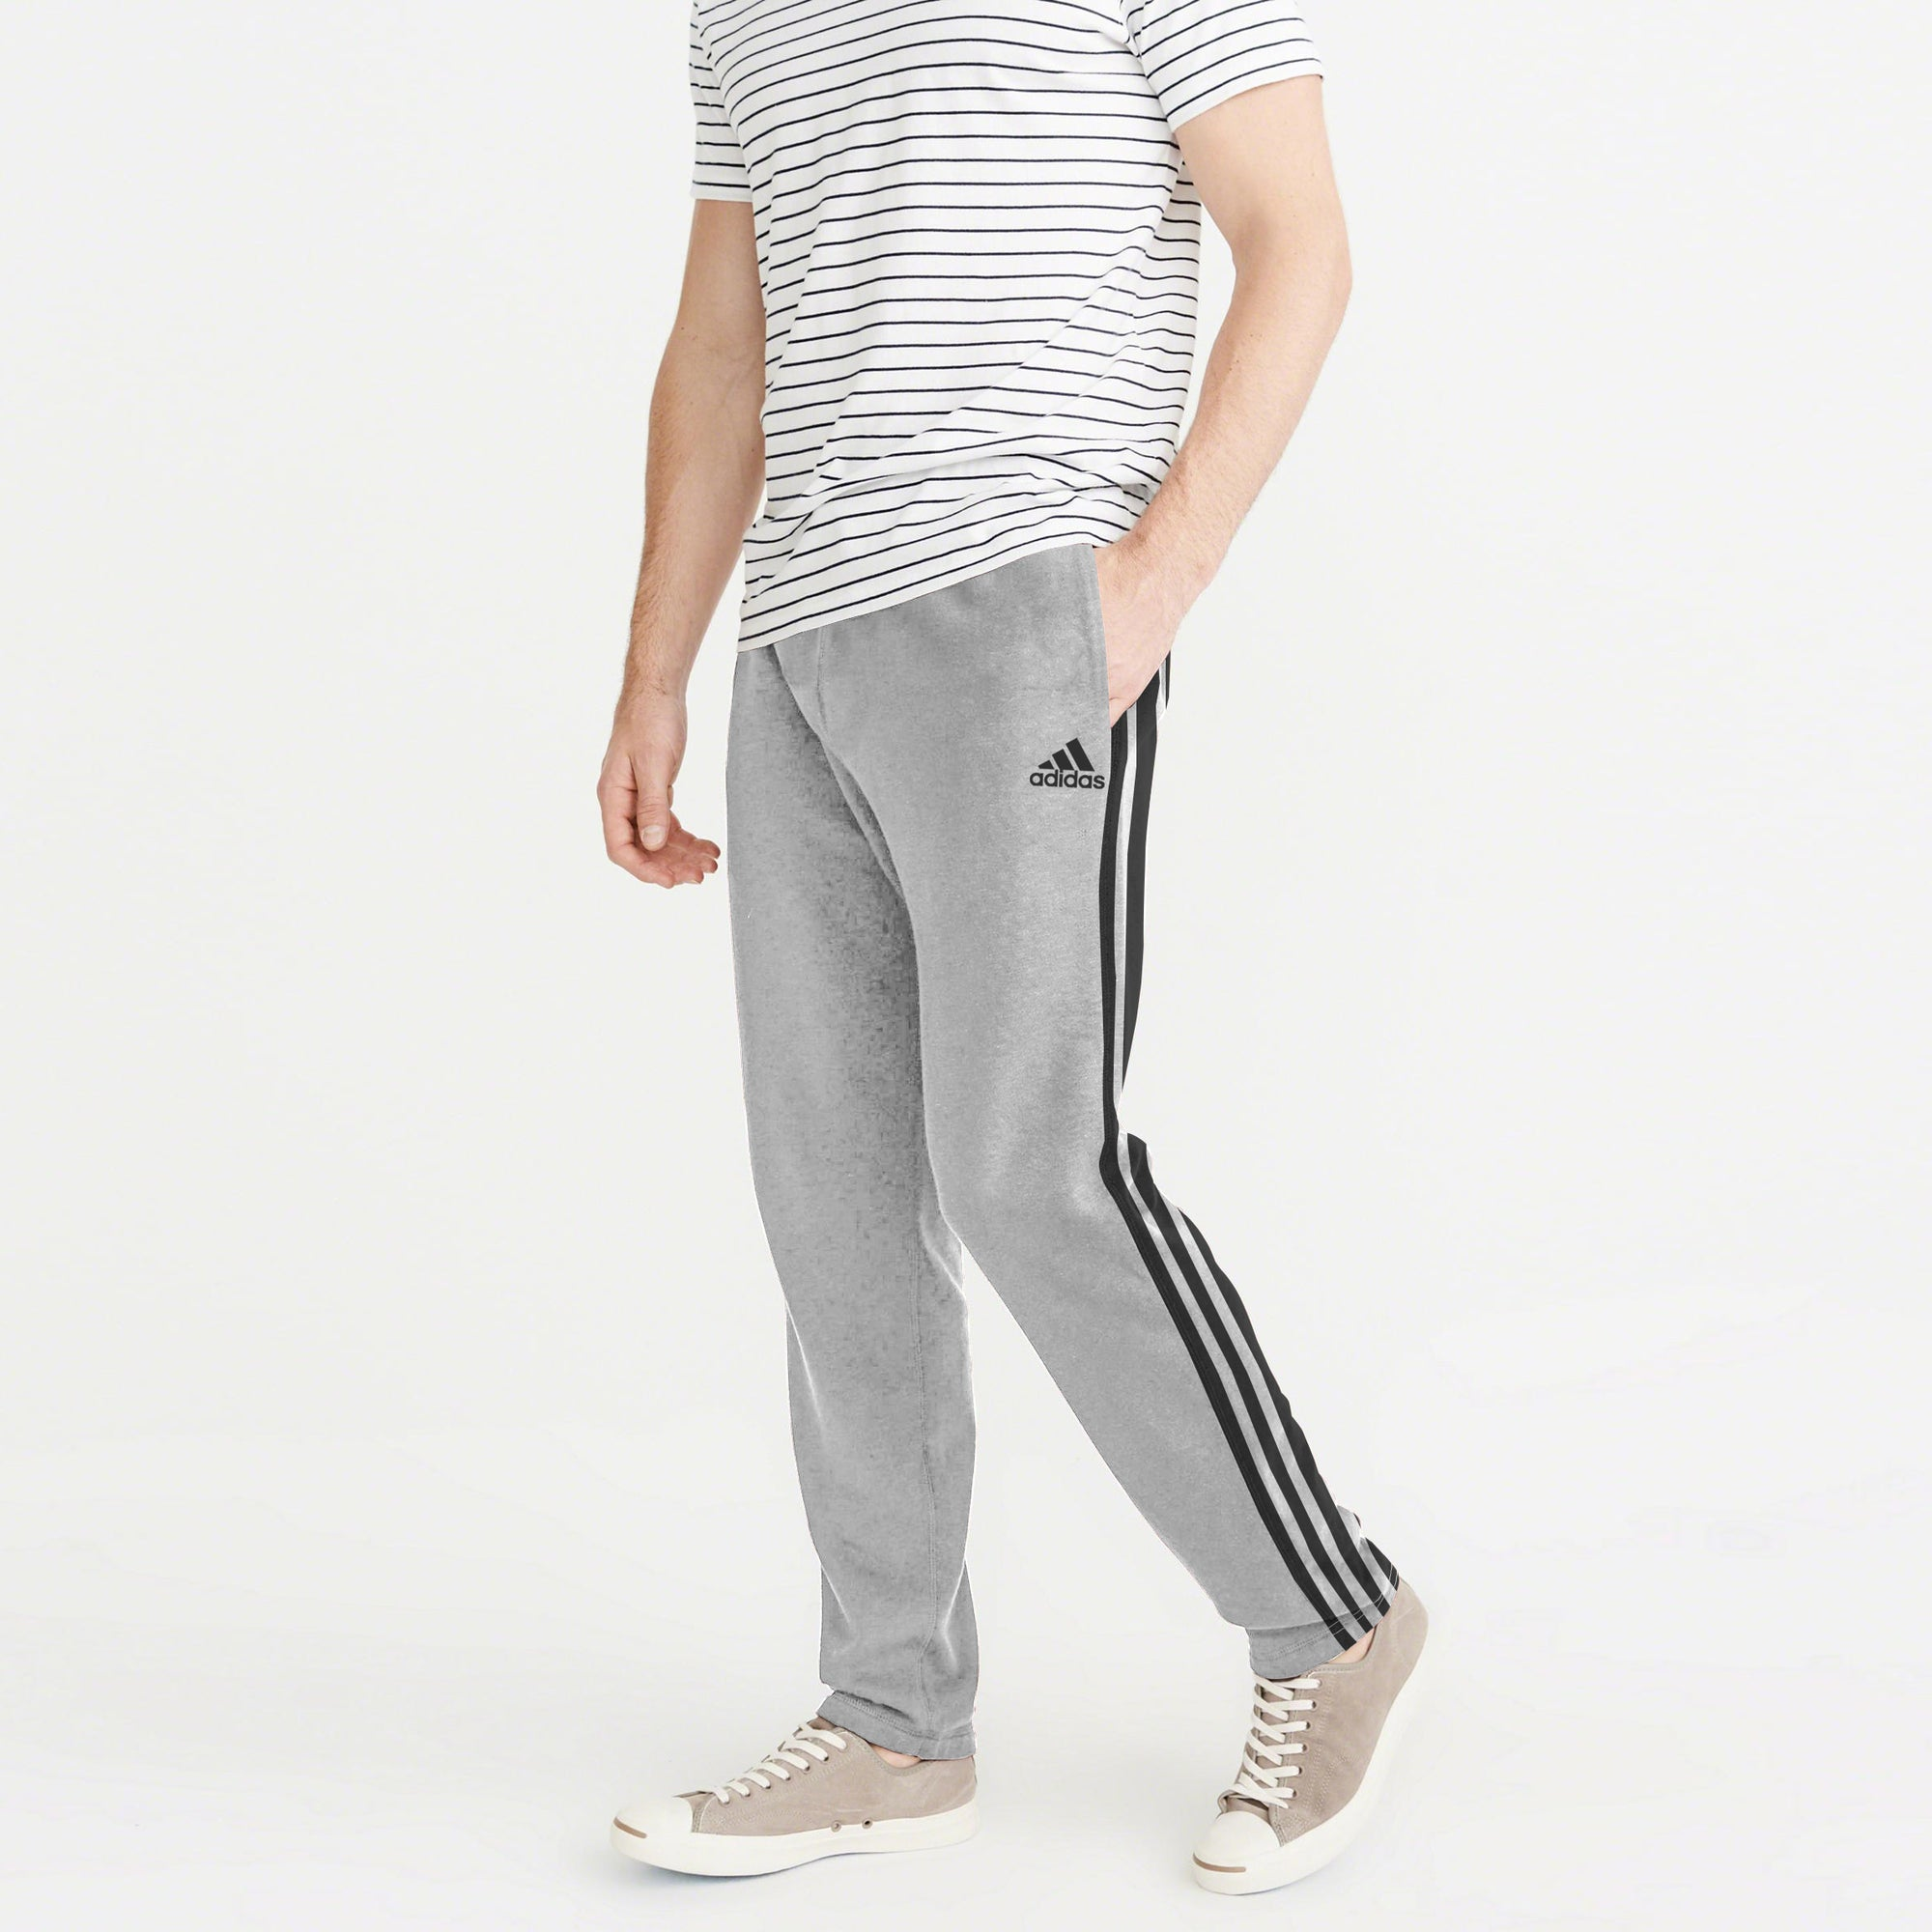 62d3ae7bd Adidas Single Jersey Regular Fit Trouser For Men-Light Grey With  Stripes-NA8723